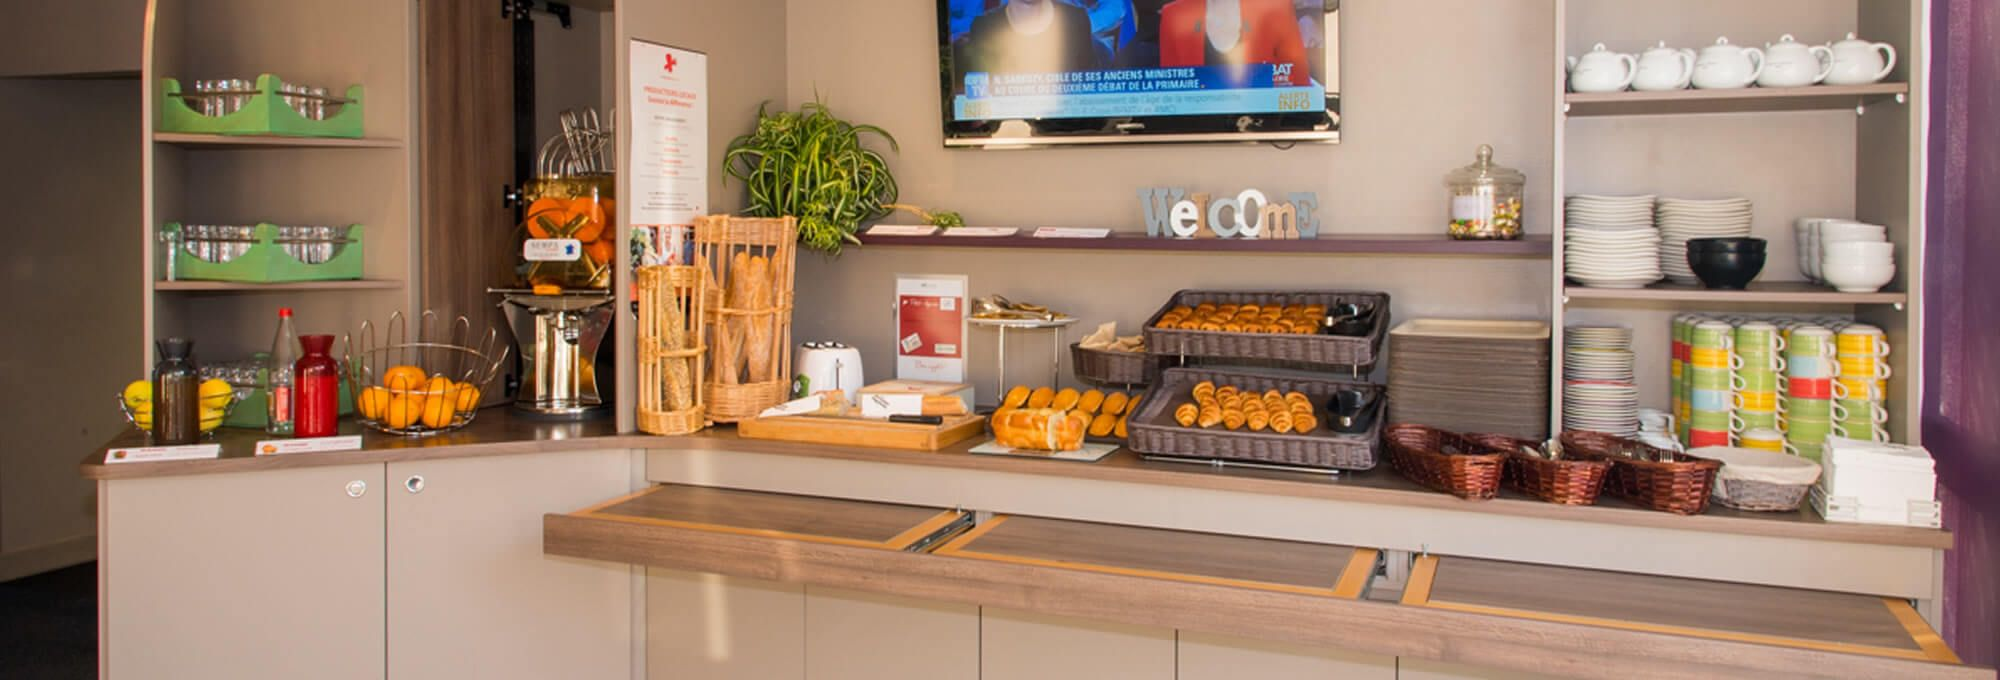 The breakfast buffet at the hotel in Joué-lès-Tours